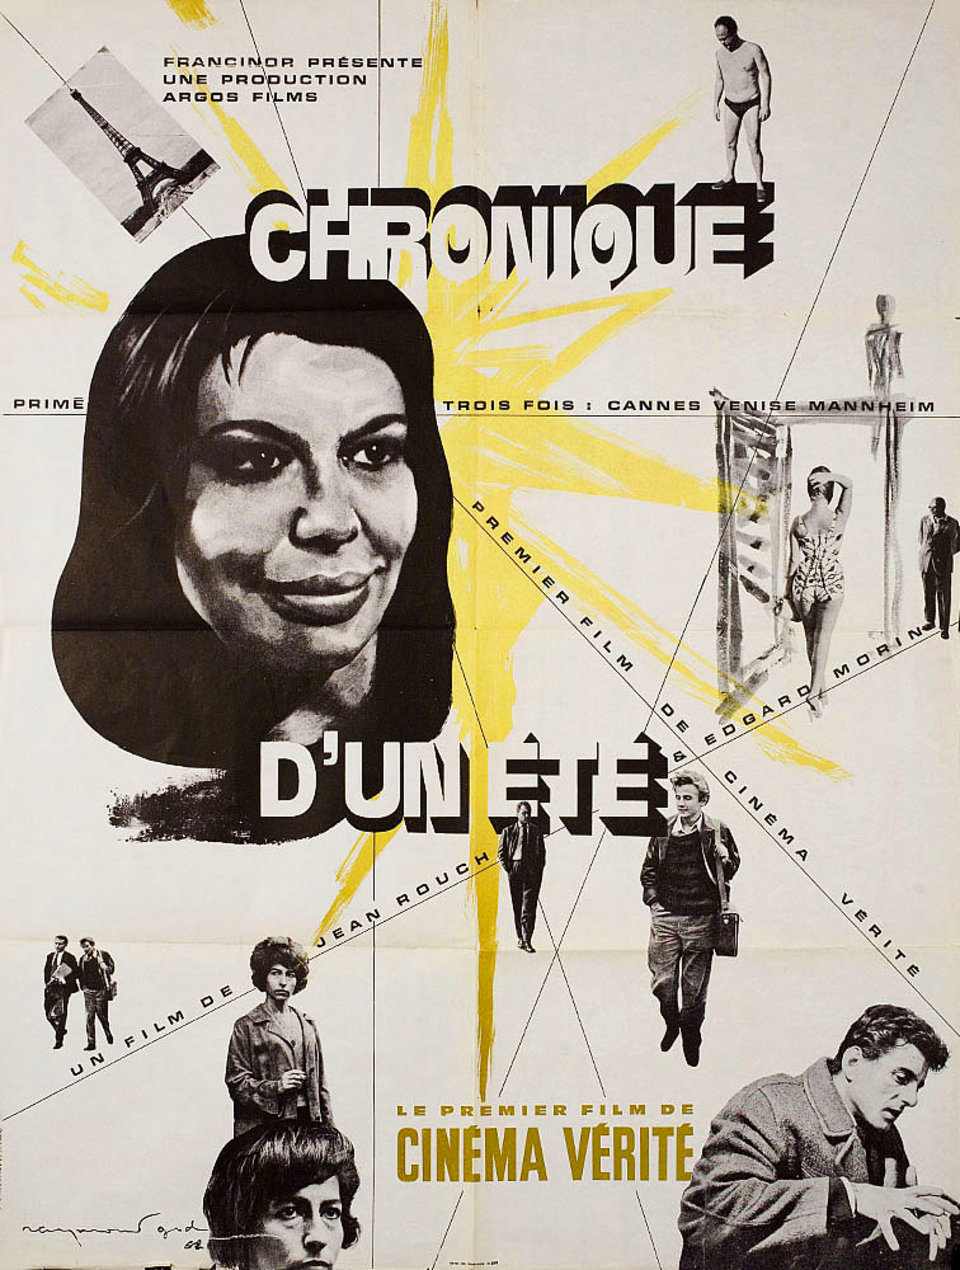 a history of the french cinema style verite Of films including my left foot, the third man, and french cinema currently  lecturer in  but irish film history, perhaps to an extent unparalleled in the rest of  europe, has  than film this style is often referred to as cinema-verité or  cinema.